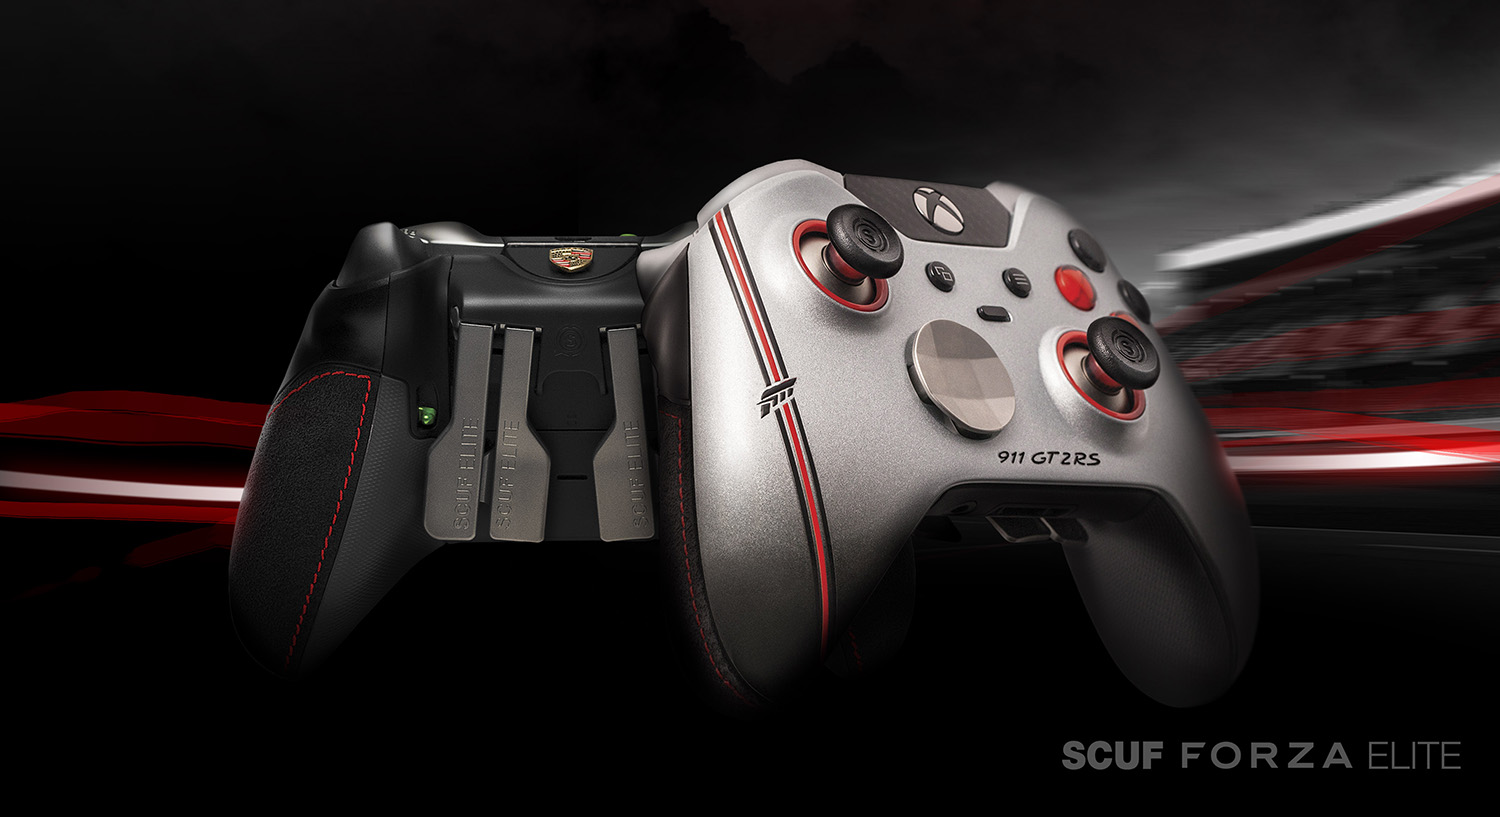 scuf gaming designs collector s edition 911 gt2 rs inspired scuf forza elit. Black Bedroom Furniture Sets. Home Design Ideas